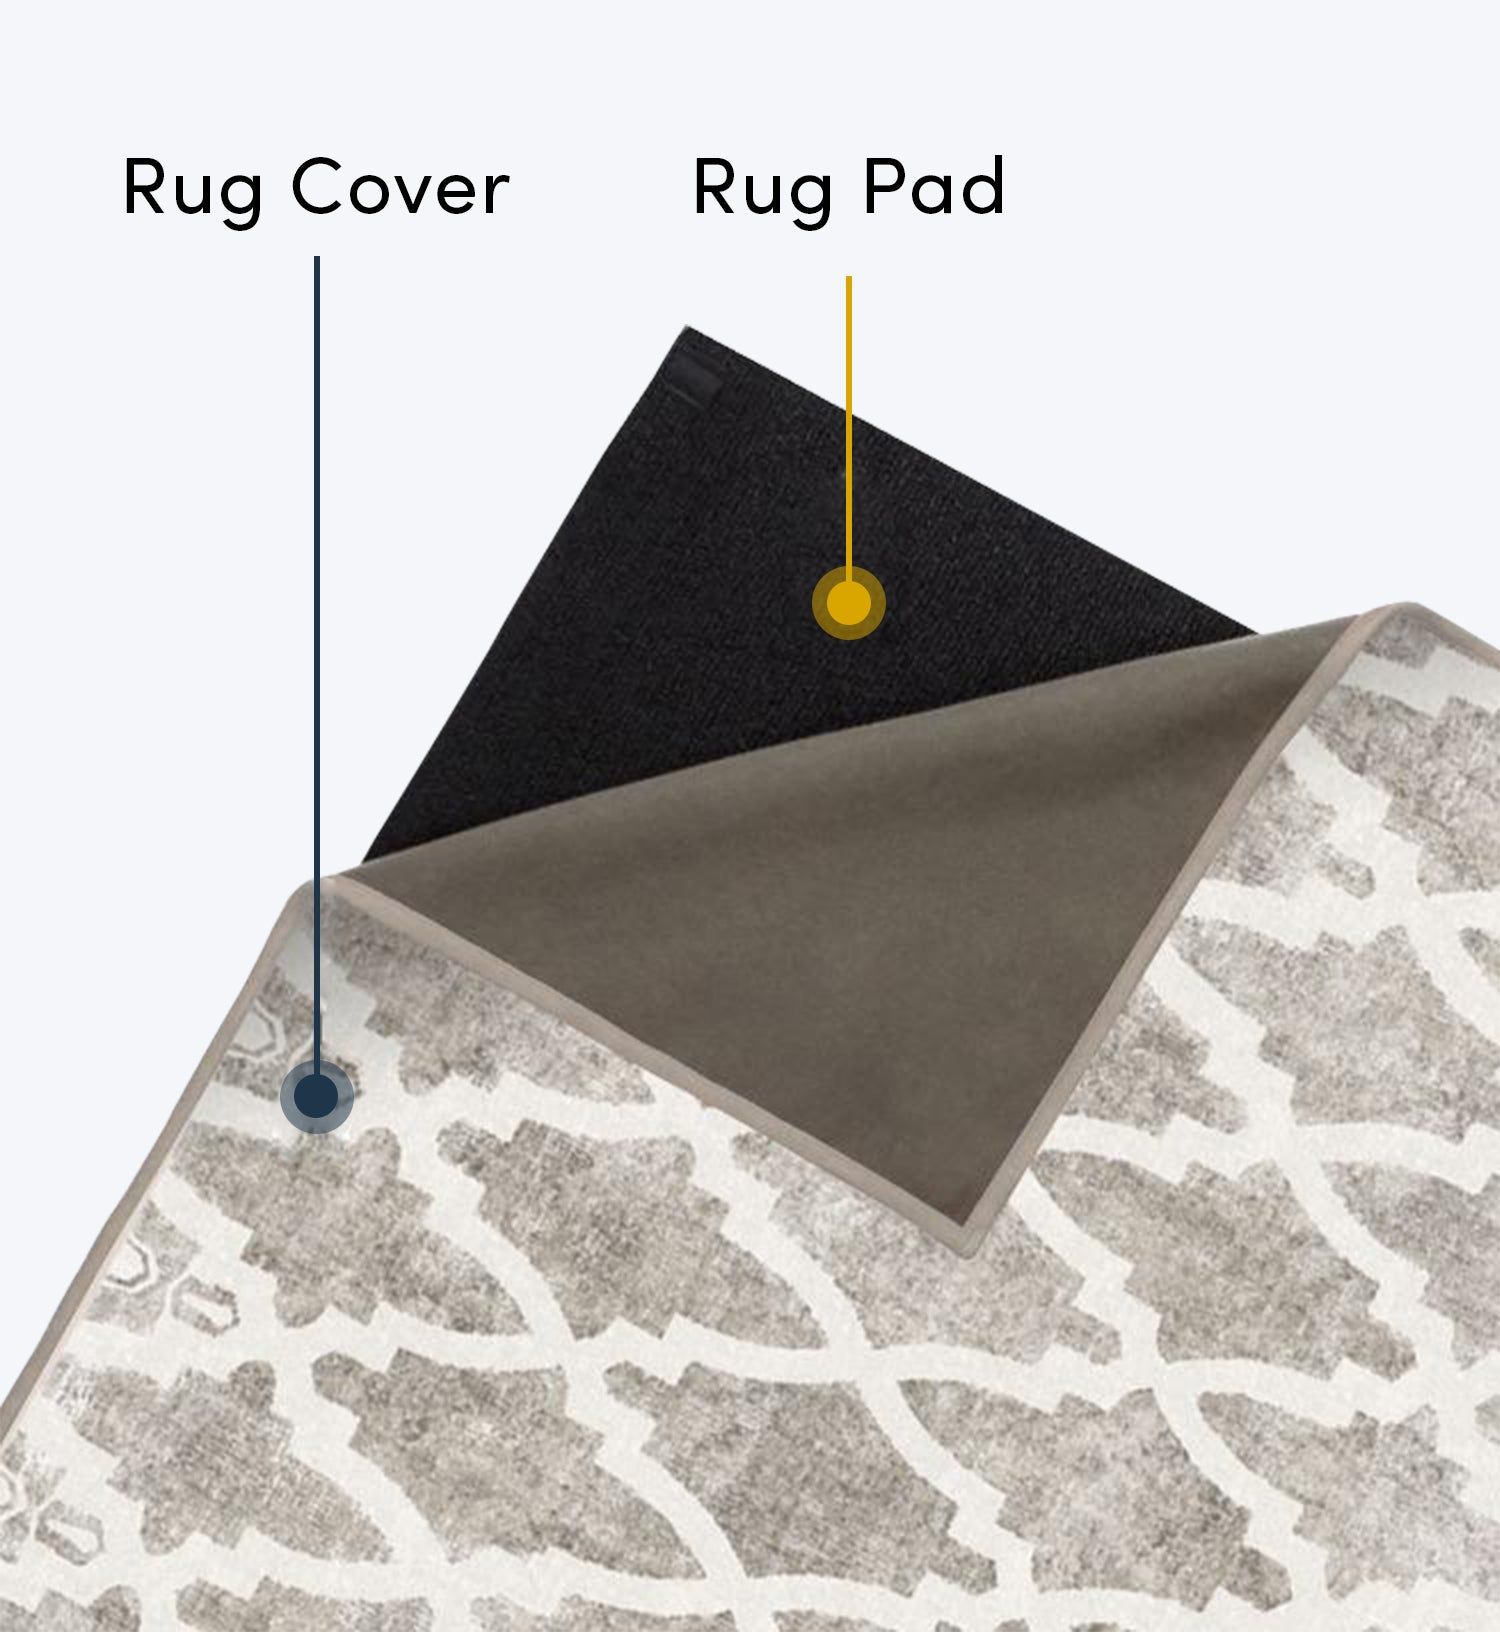 Rug & Cover Image